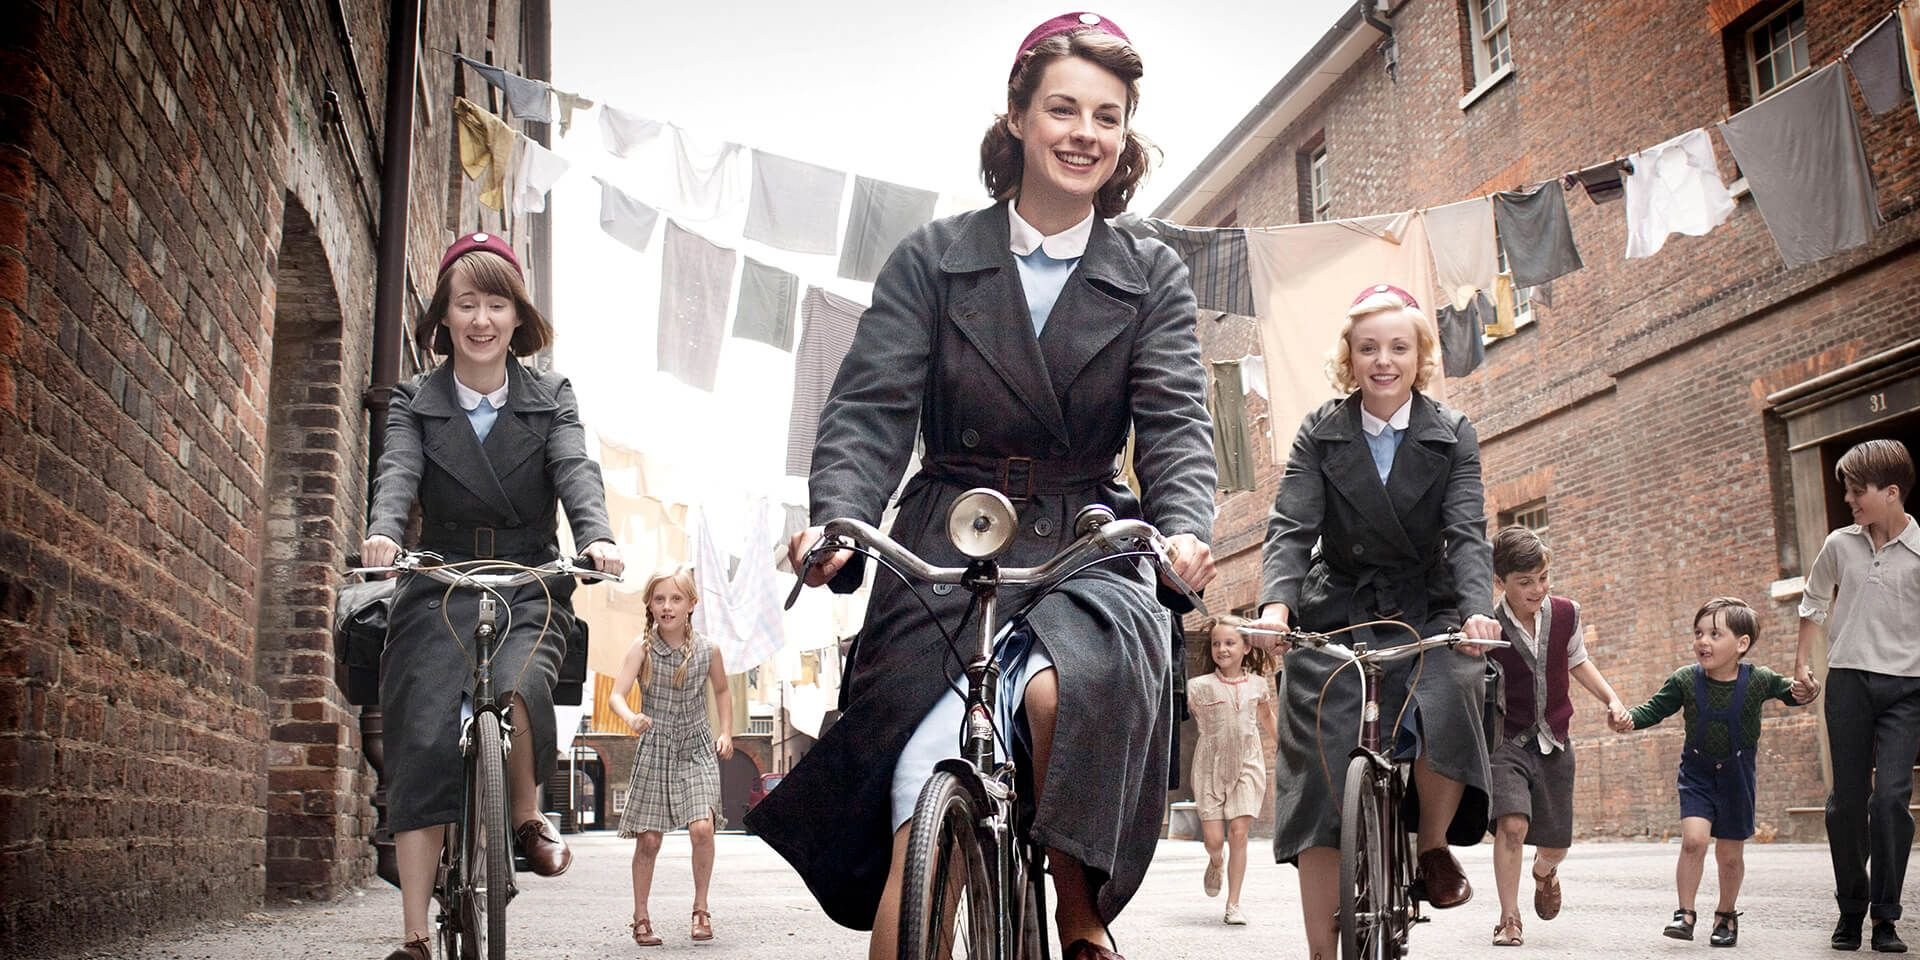 'Call the Midwife' series 1